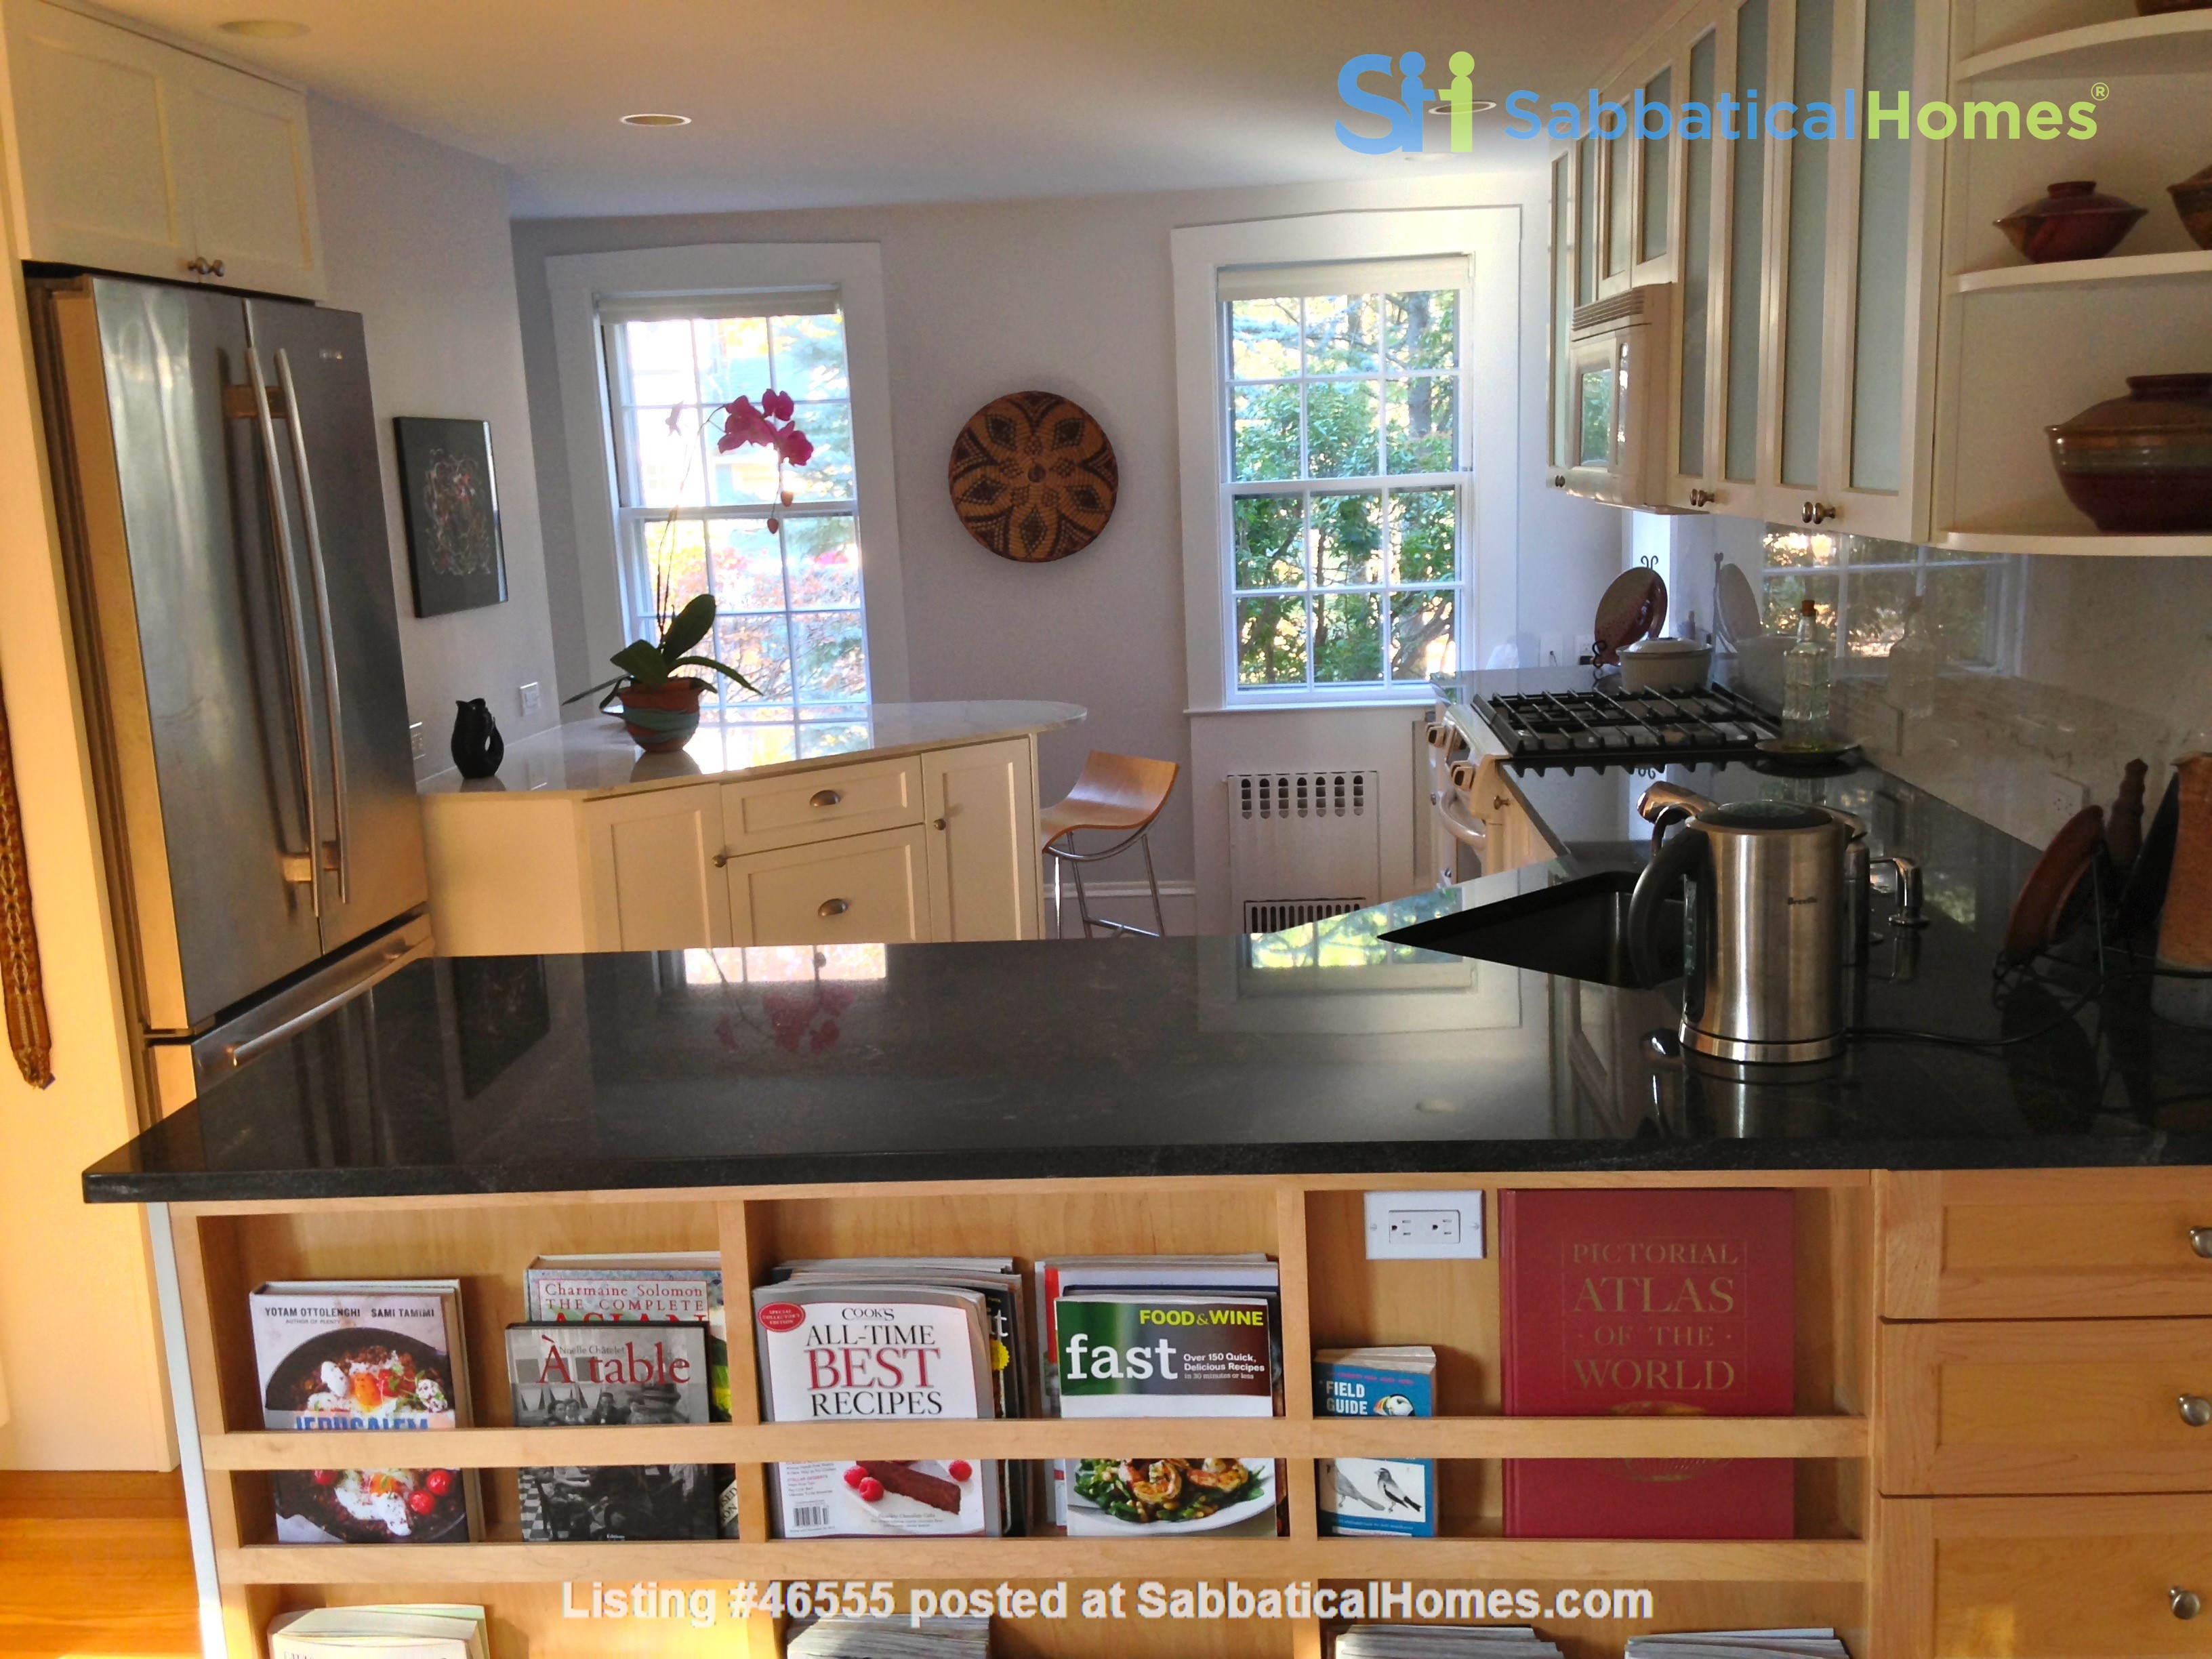 3BR furnished home in Newton on quiet street, next to park - walk to lake Home Rental in Newton, Massachusetts, United States 3